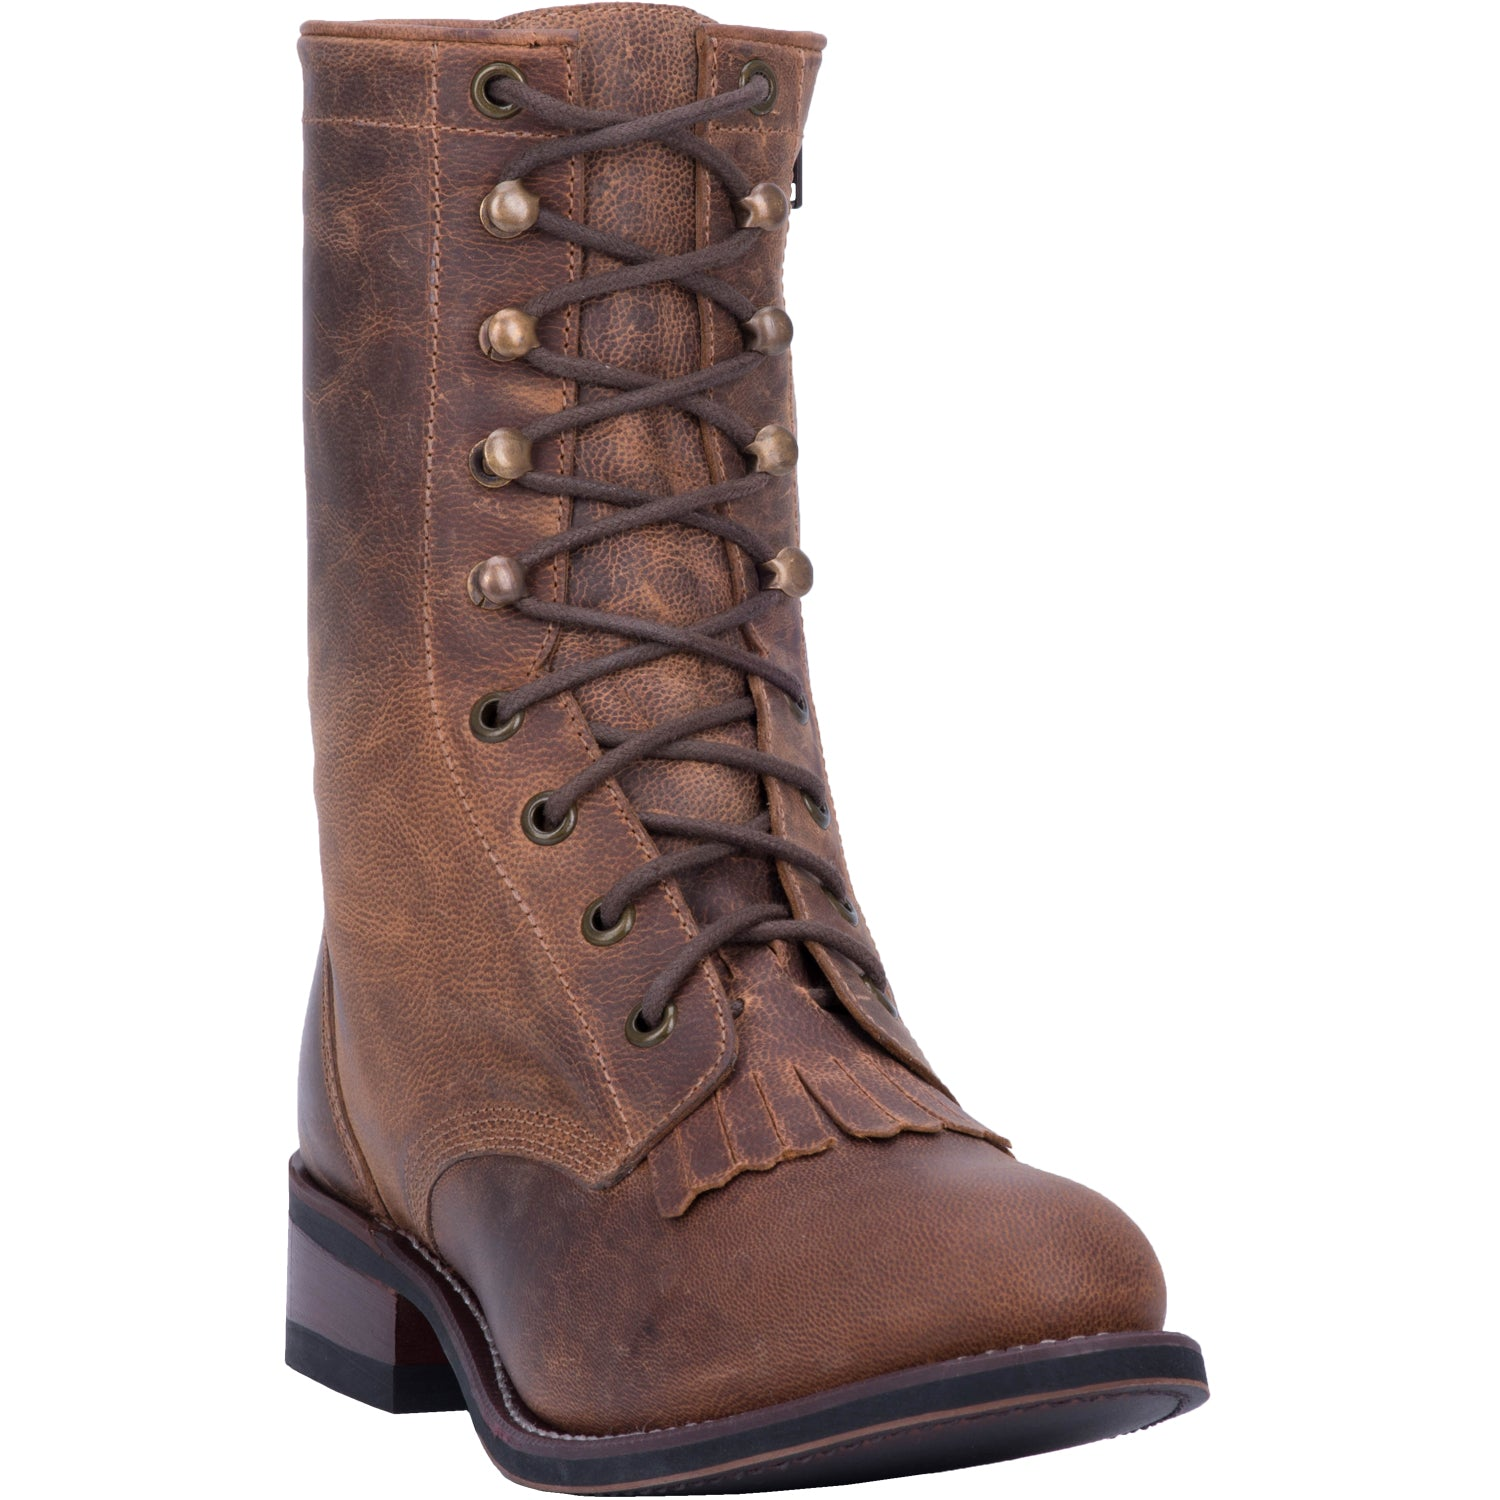 SARA ROSE LEATHER BOOT 4197170708522